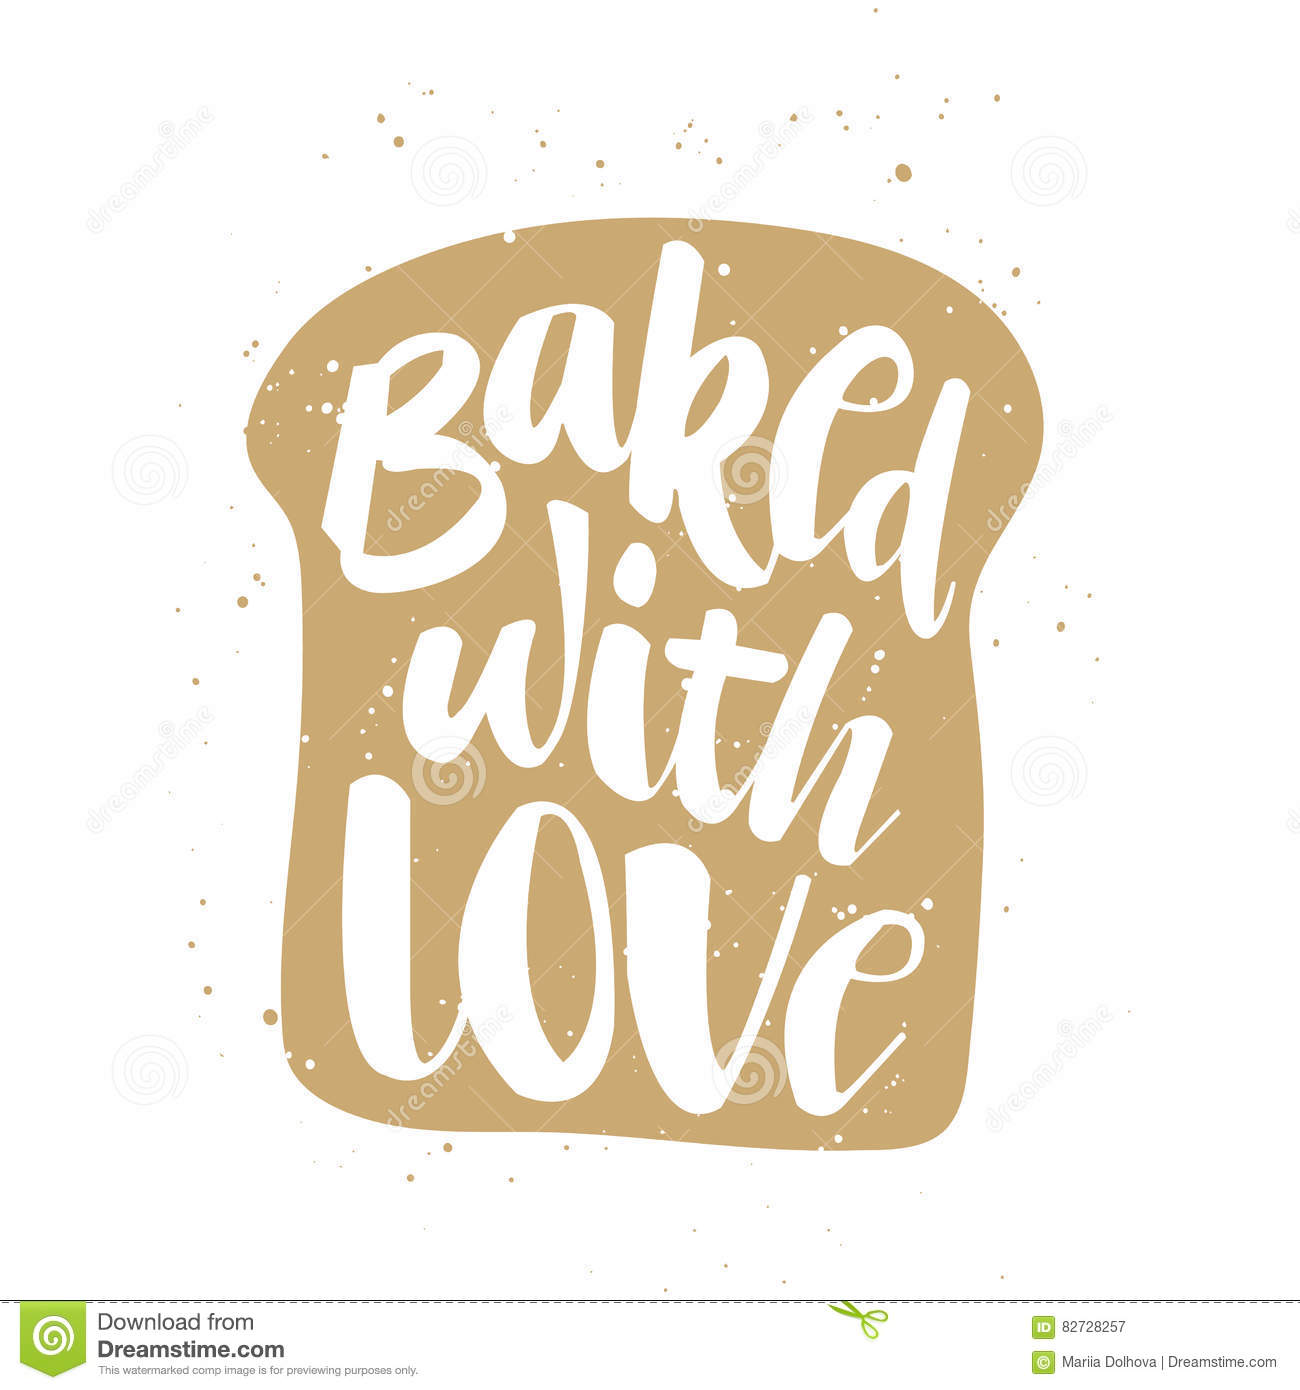 Baked with love in piece of bread, handwritten lettering